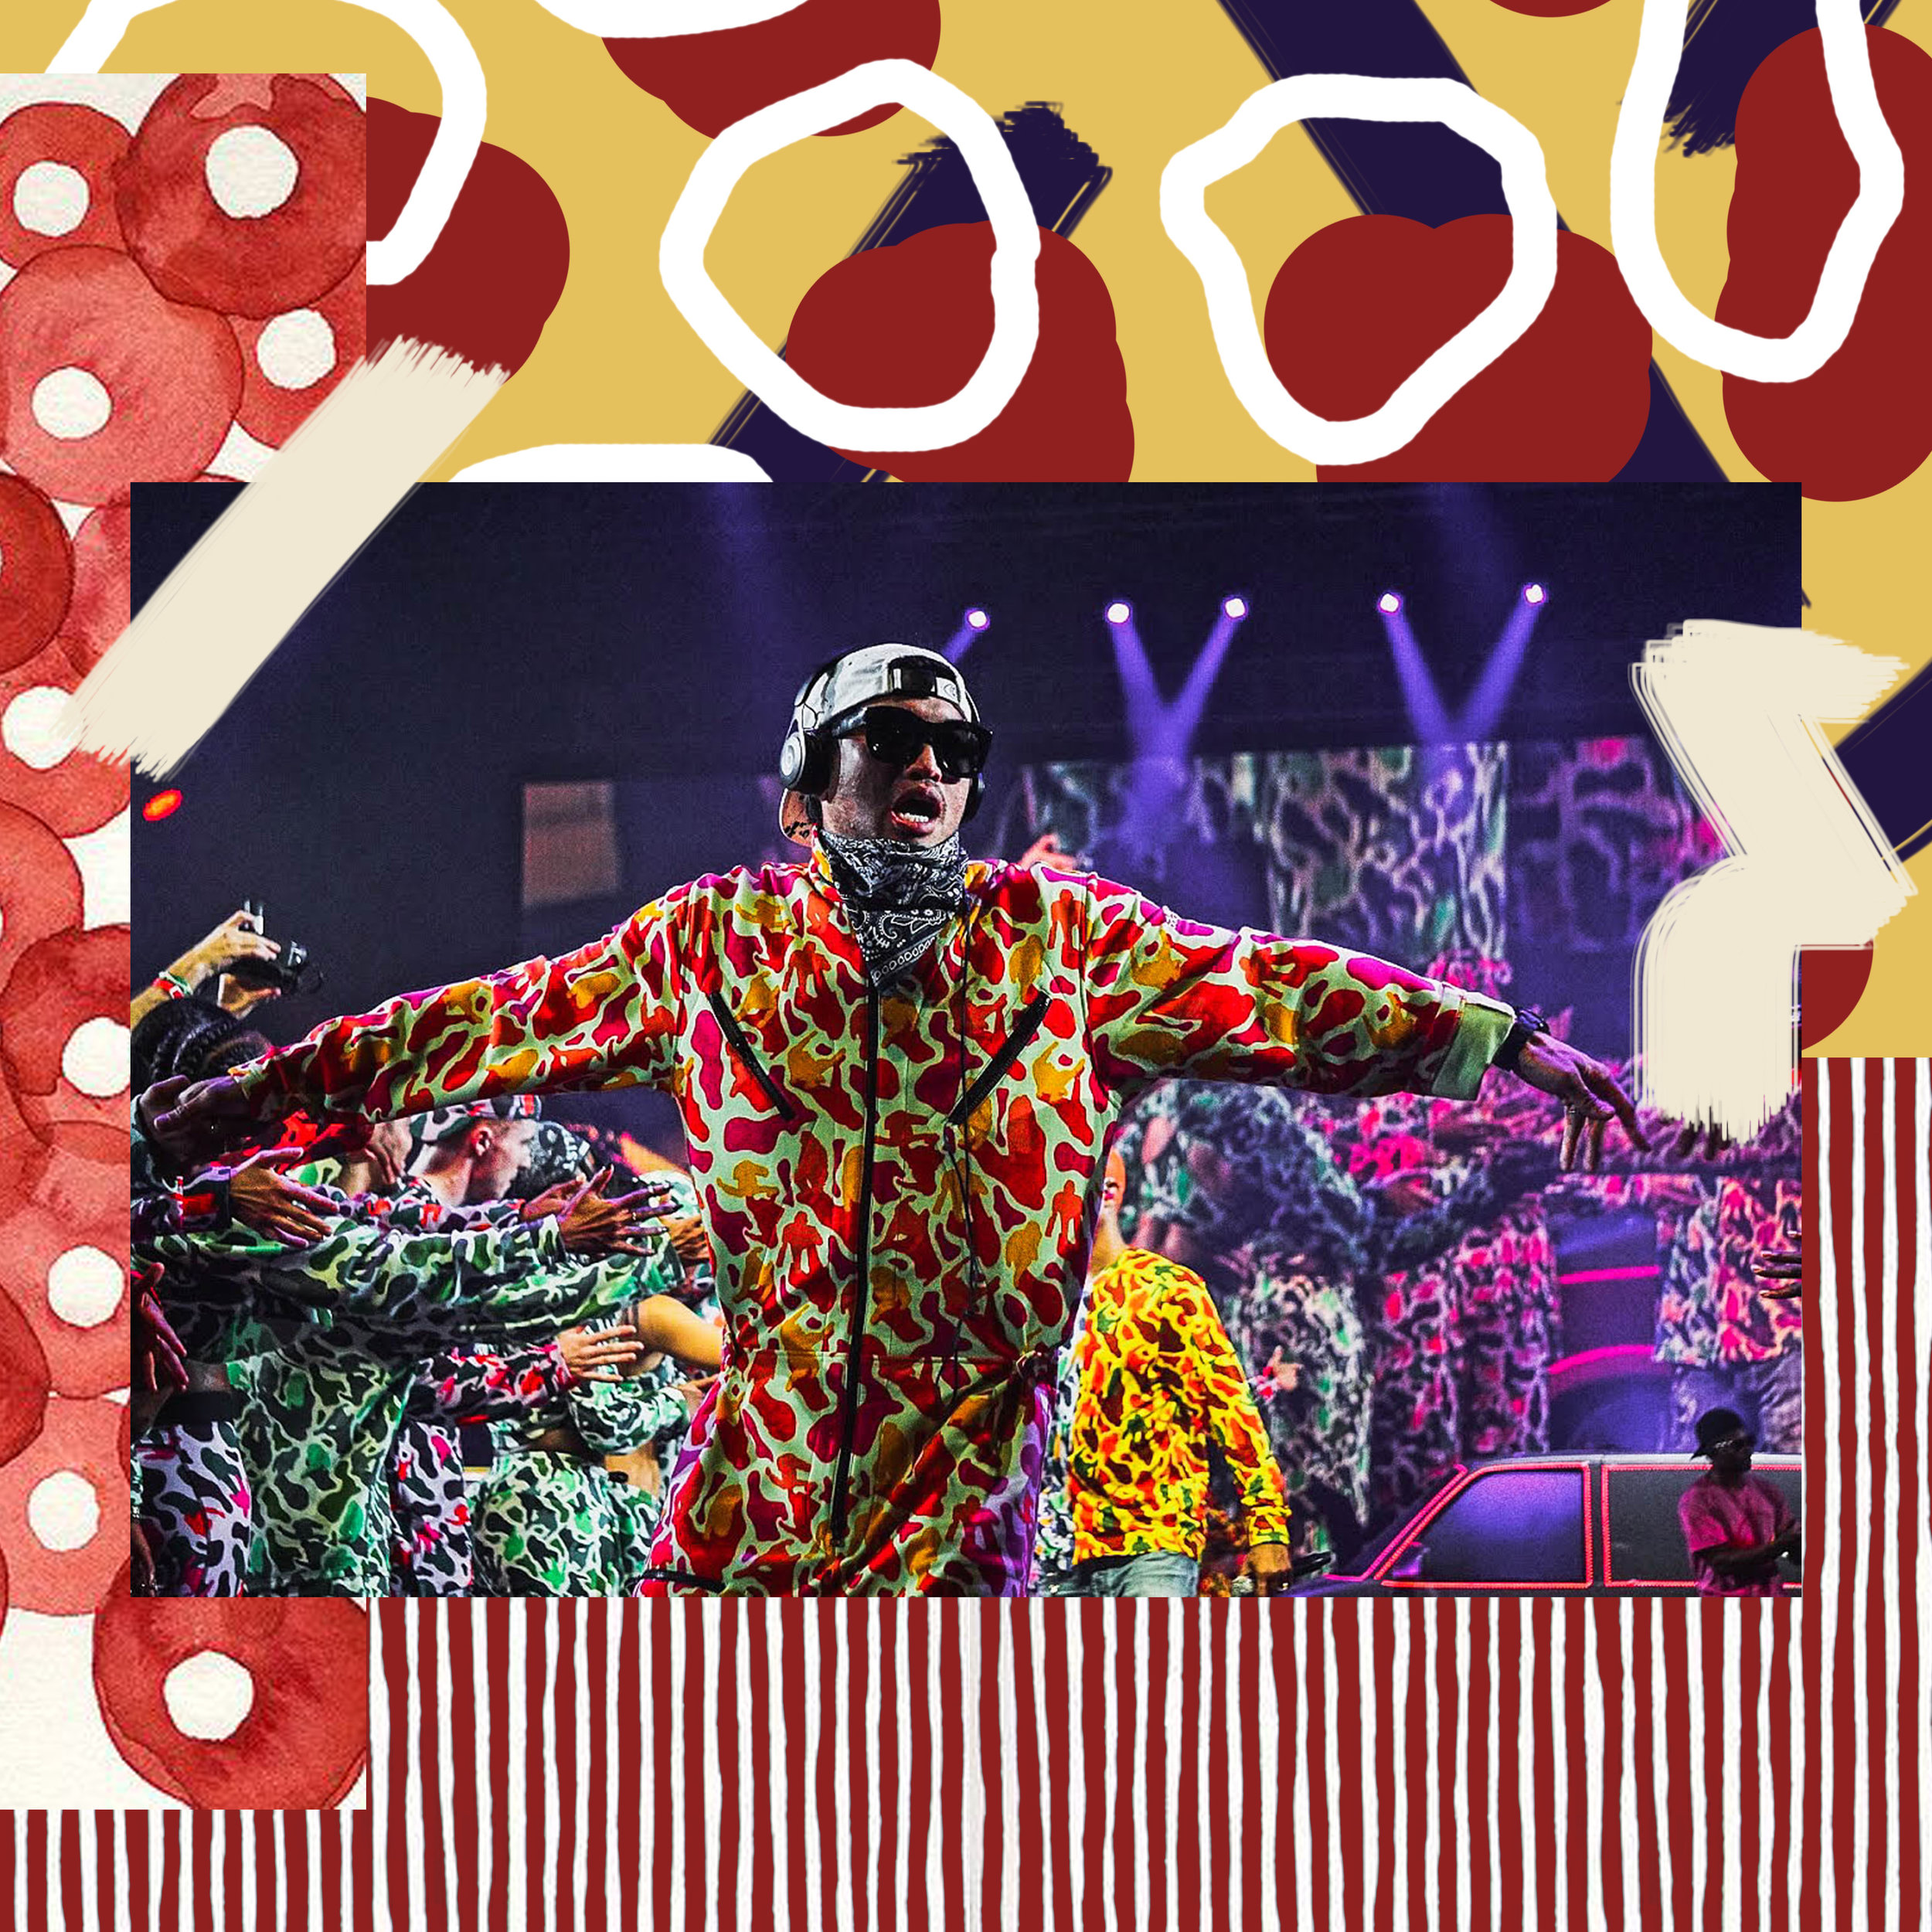 CHAD HUGO DANCES TO NEW N.E.R.D ALBUM,  NO_ONE EVER REALLY DIES , AT COMPLEXCON IN LONG BEACH NOVEMBER 4 / PHOTO CREDIT:  ASHA MONÉ  / DESIGN CREDIT:  VANESSA ACOSTA